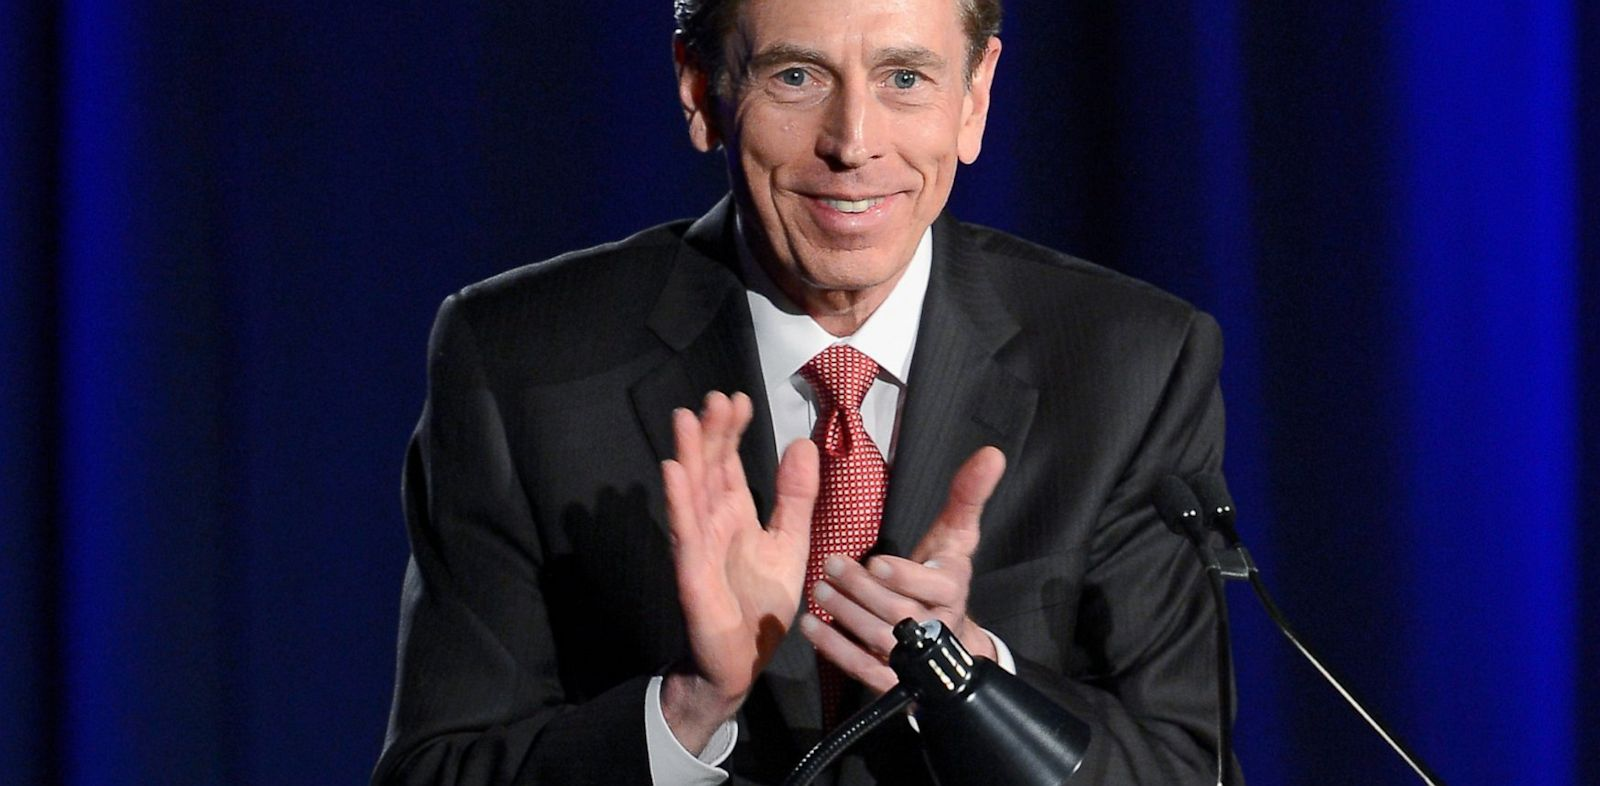 PHOTO: Former CIA director and retired four-star general General David Petraeus